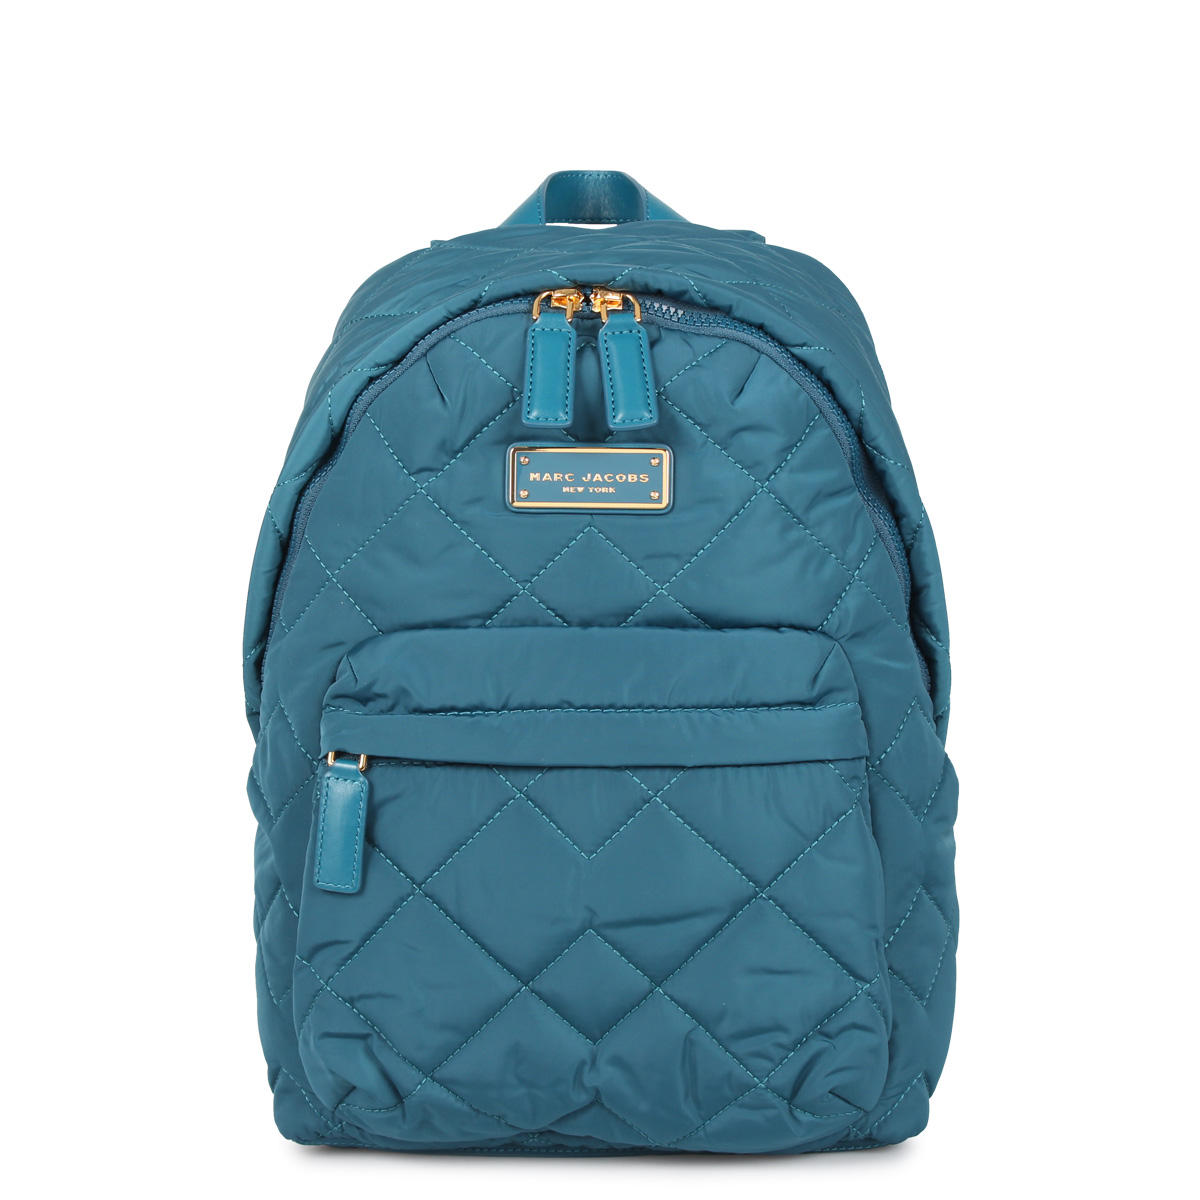 MARC JACOBS BACKPACK マークジェイコブス リュック バッグ バックパック レディース ブルー M0011321-448